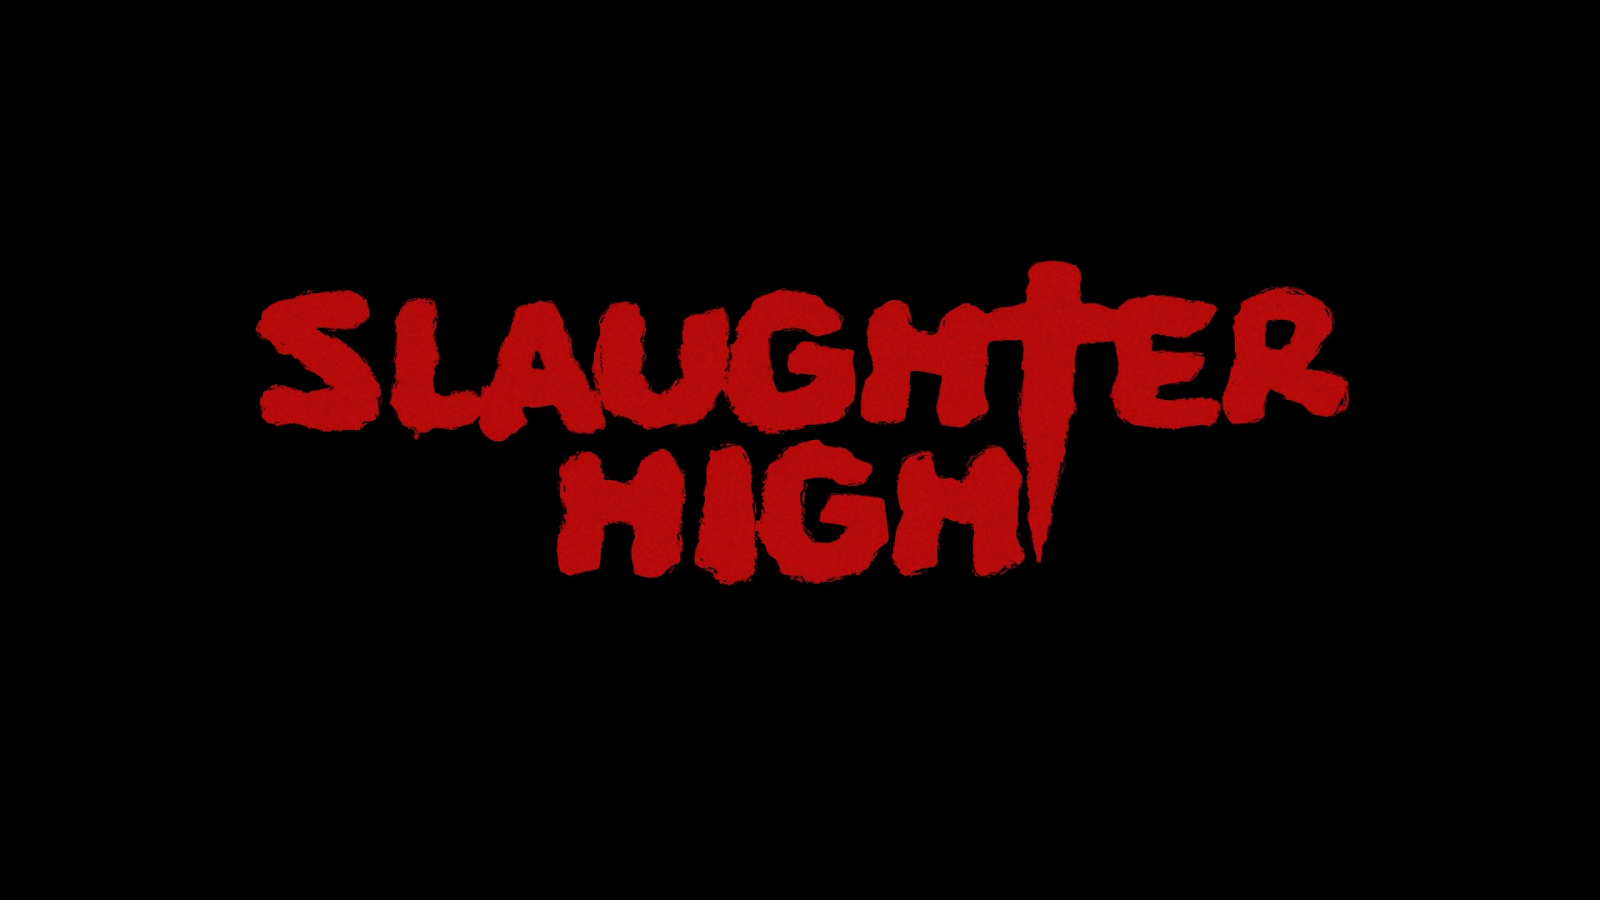 slaughter high title card